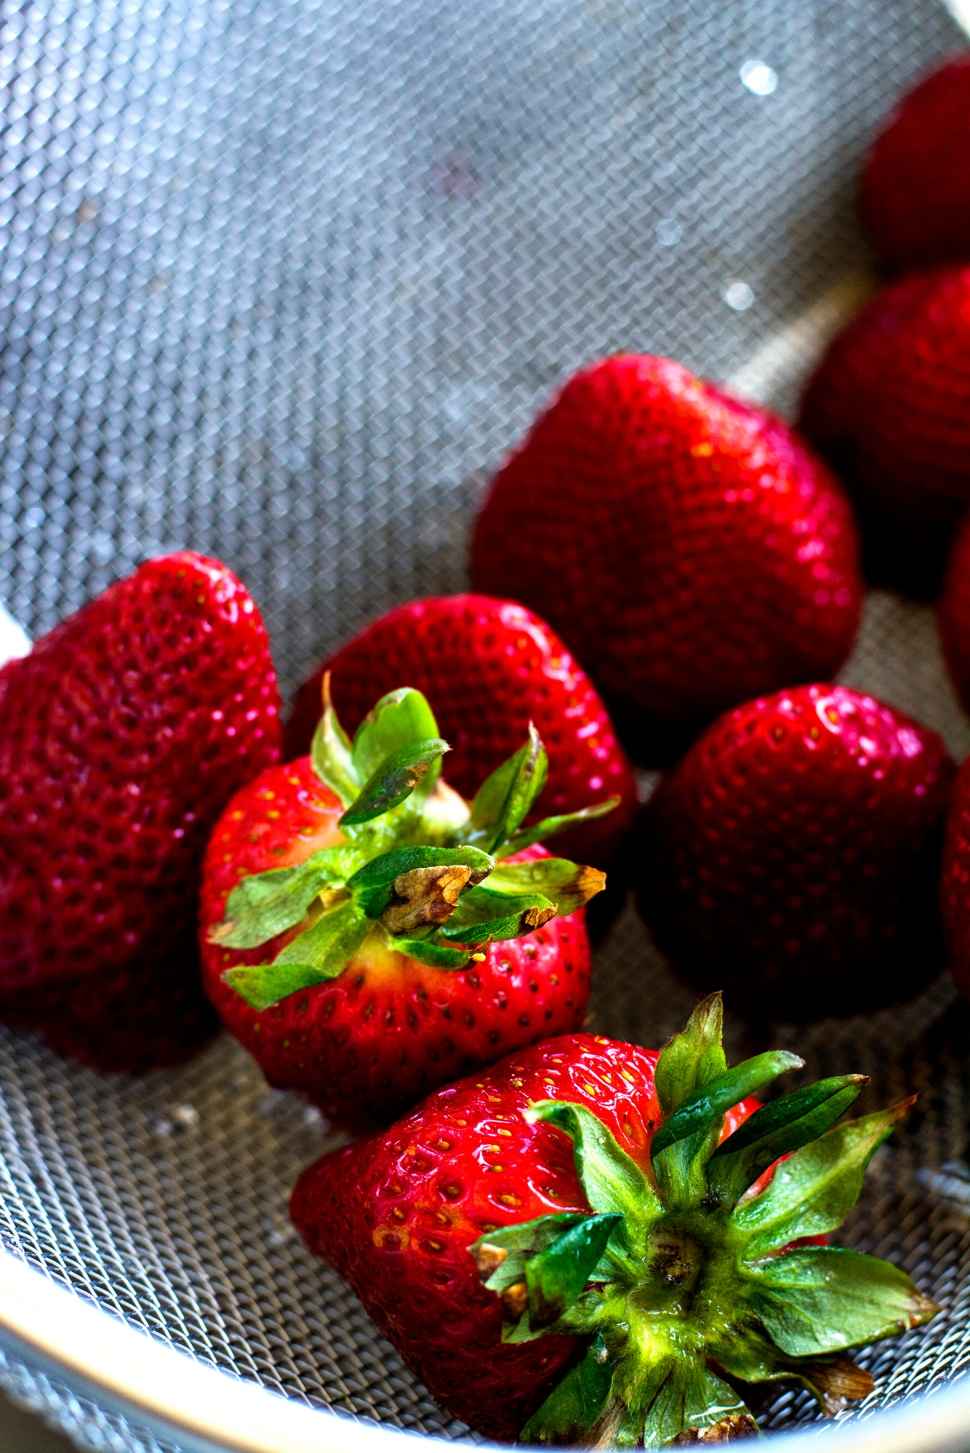 Strawberries 2 rs